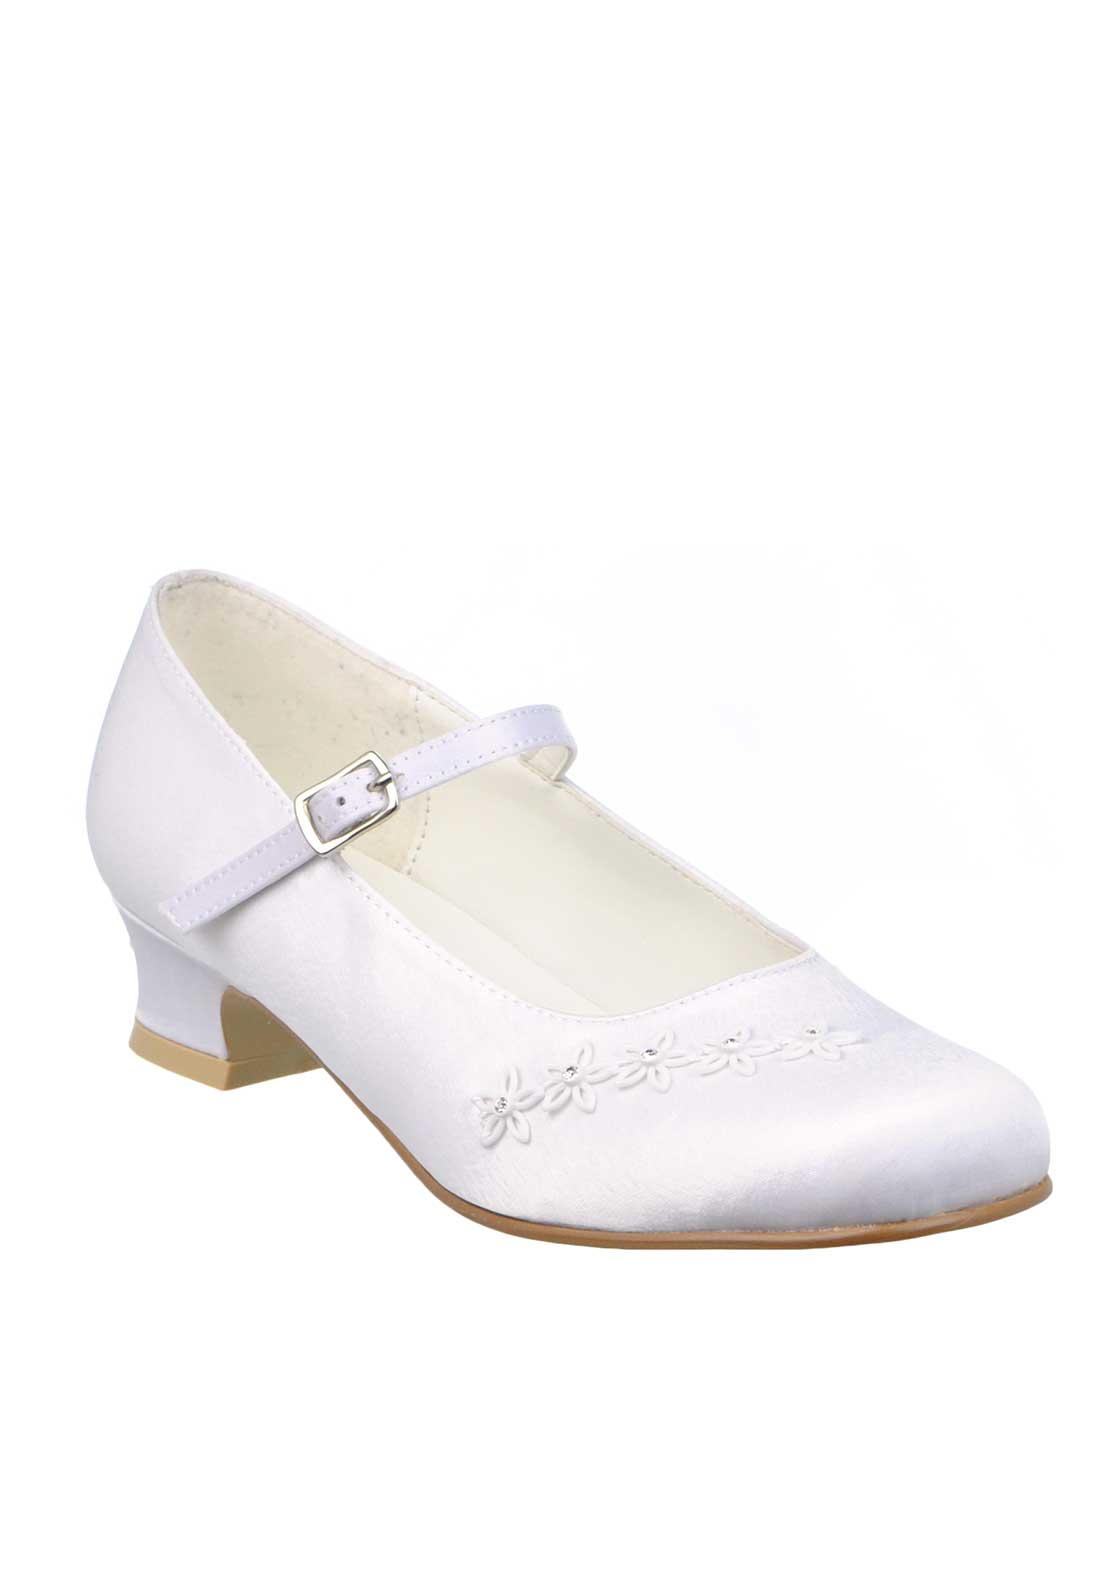 Little People Girls Diamante Embellished Flower Communion Shoes, White